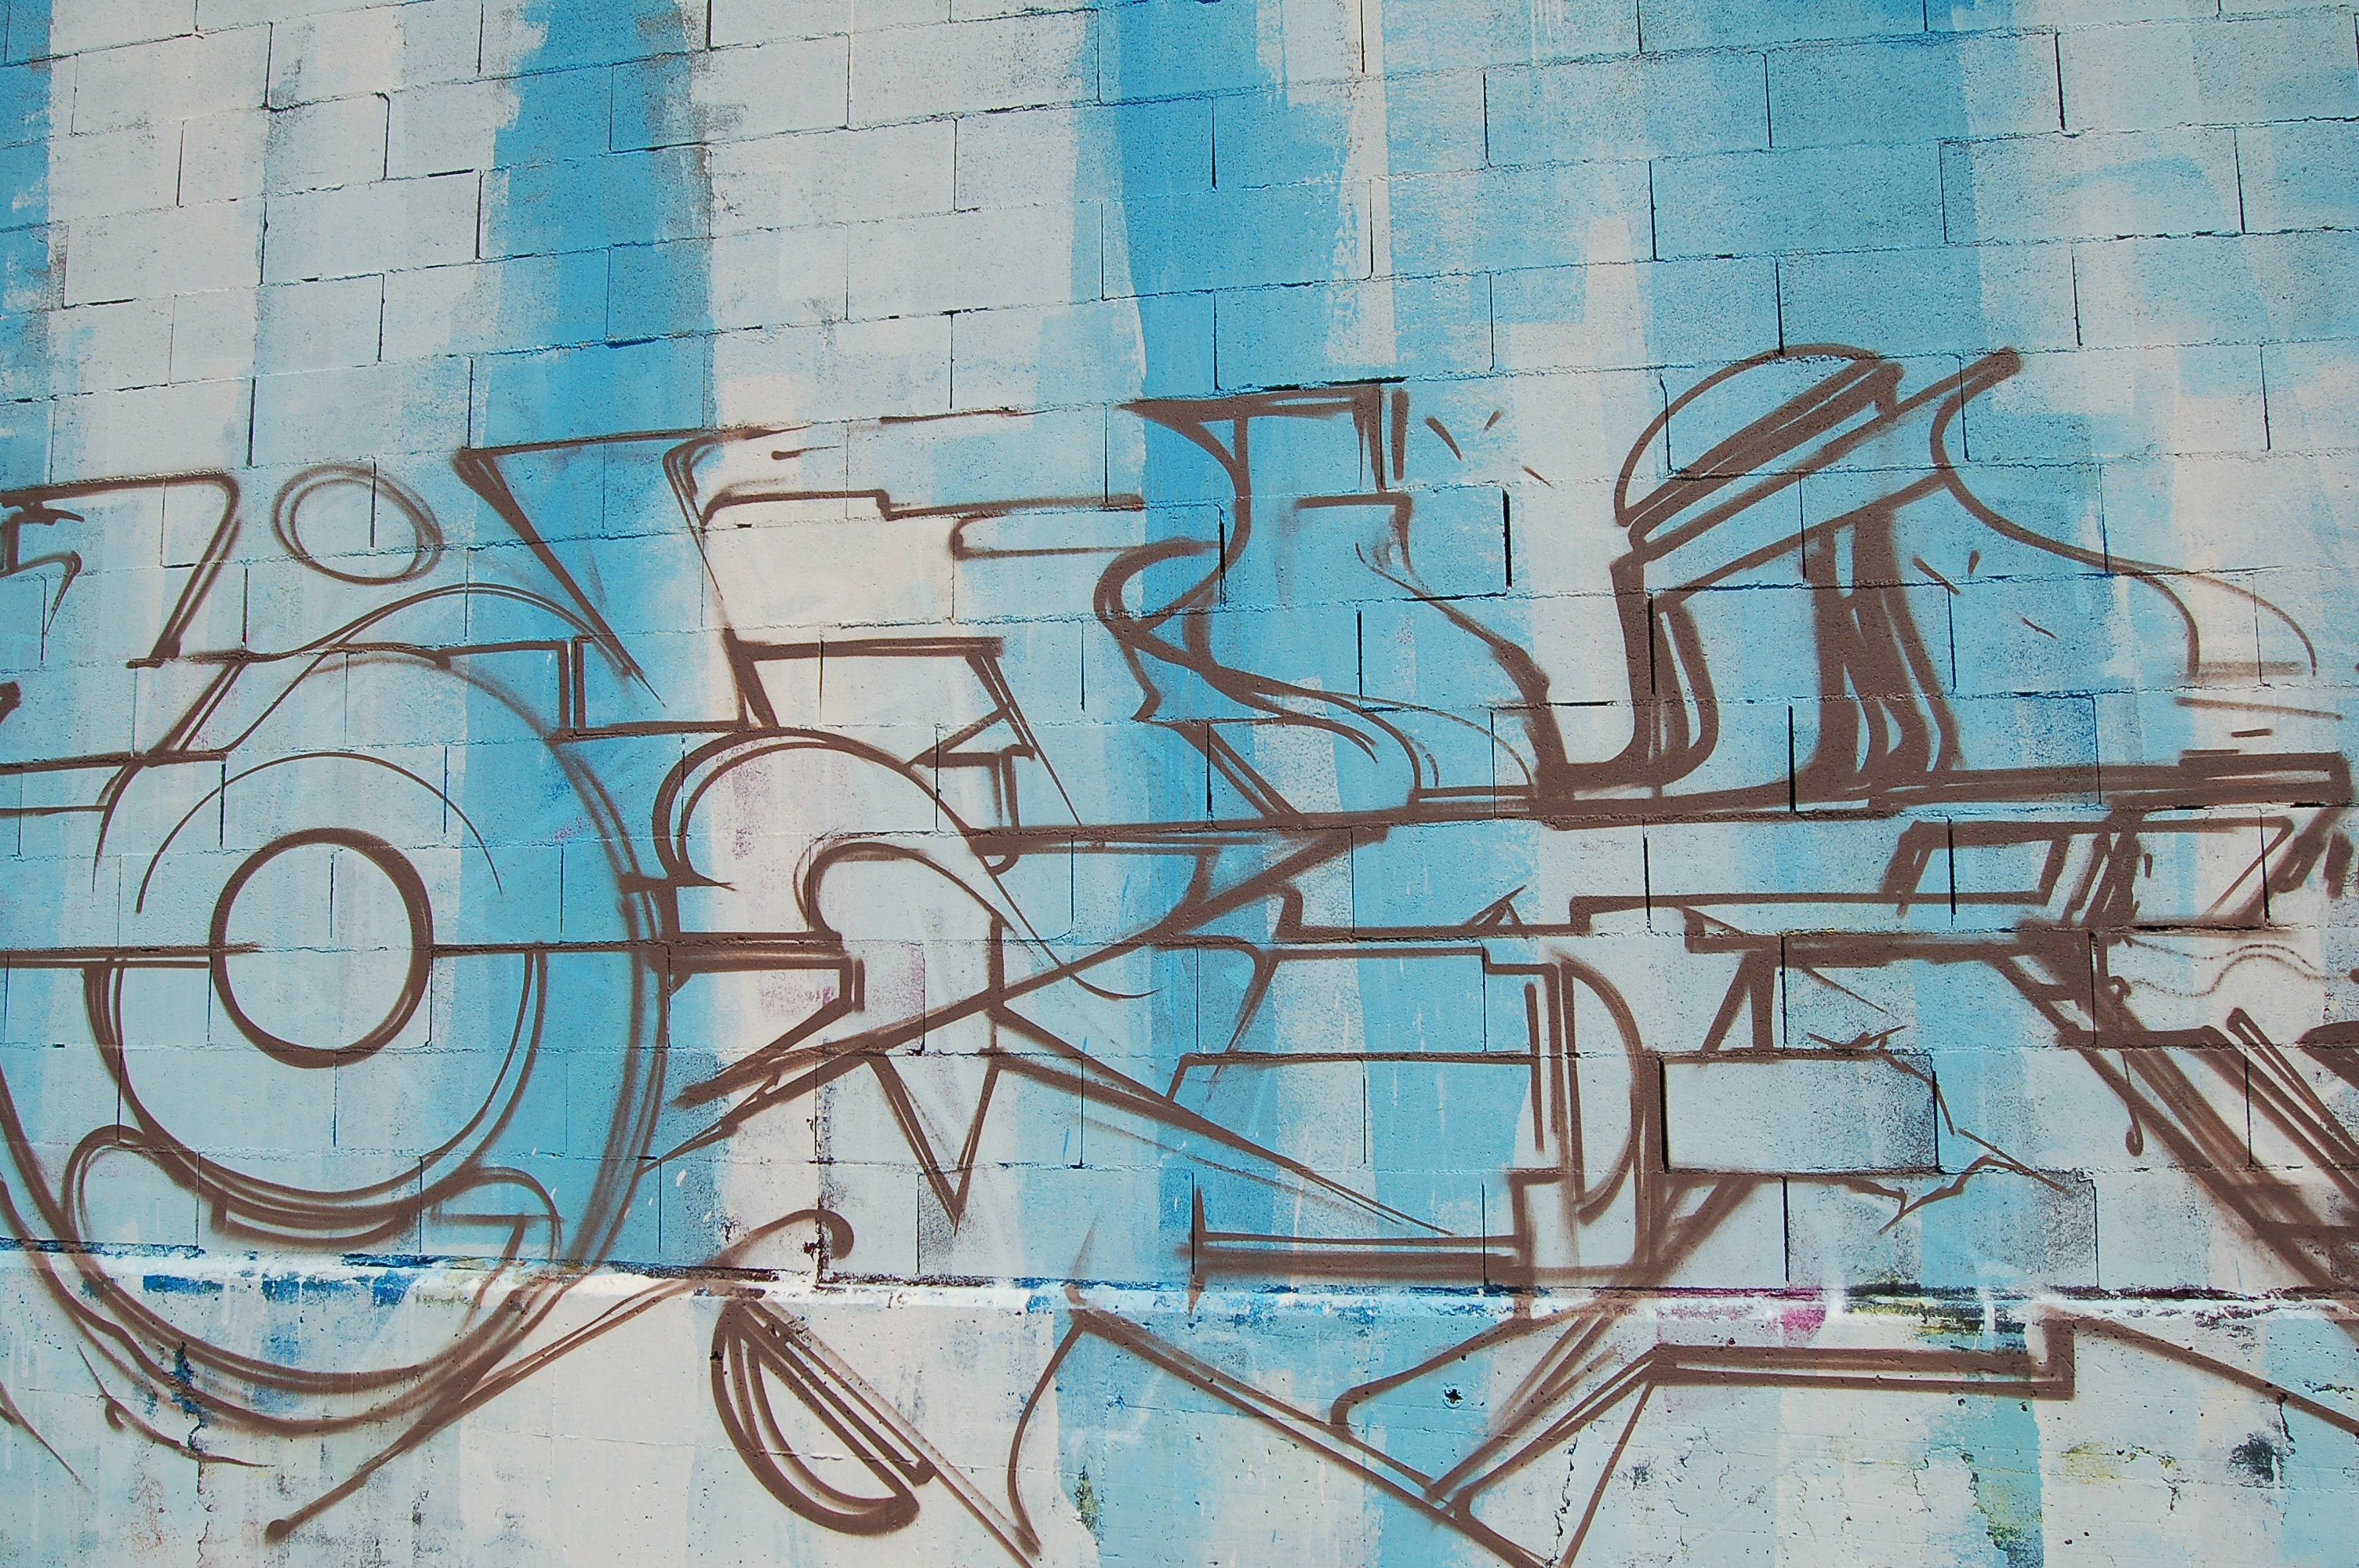 A basic graffiti drawing on a blue and white brick wall.